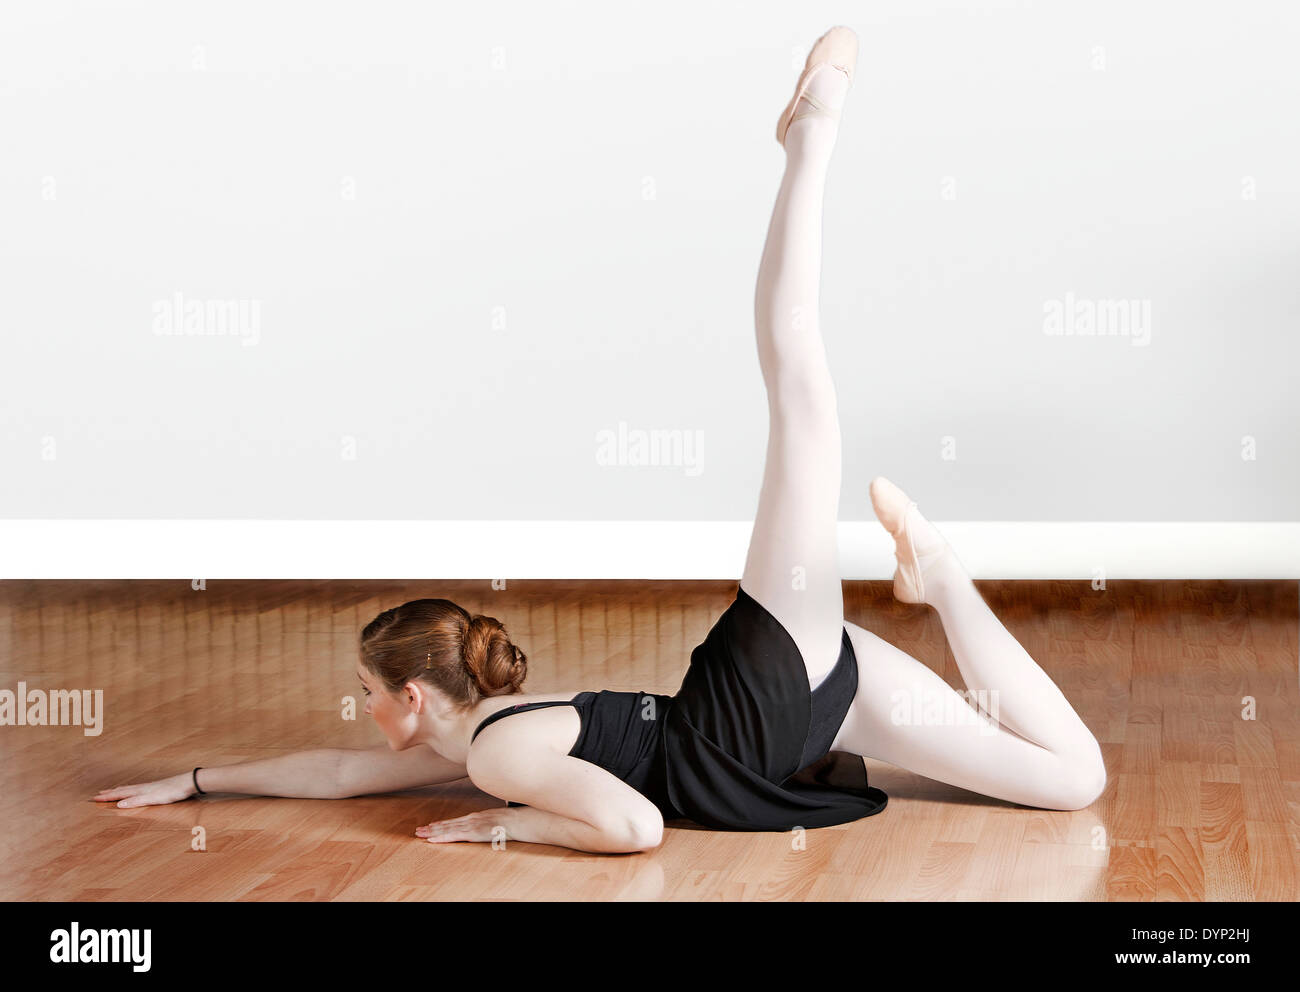 Young female ballet dancer working out on a studio floor - Stock Image